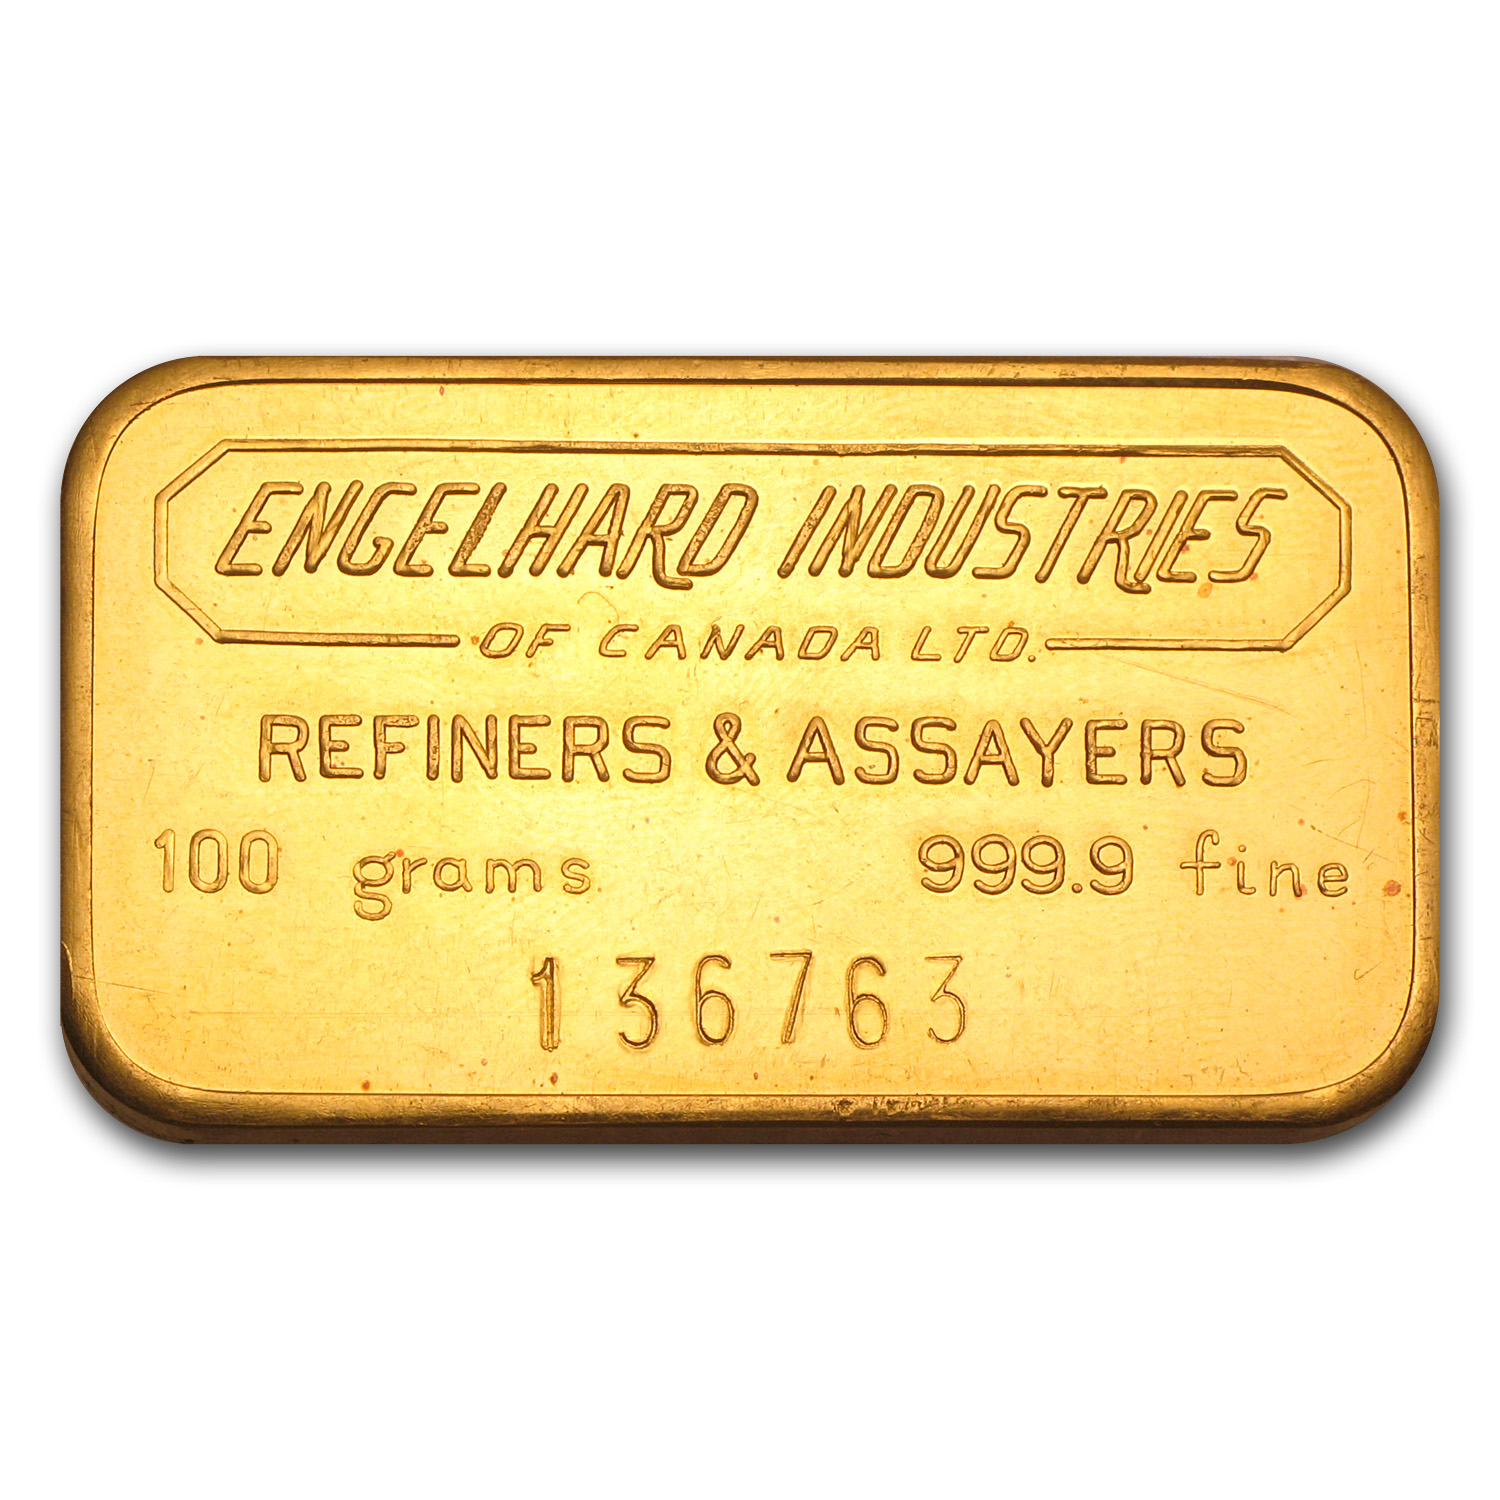 100 gram Gold Bars - Engelhard Industries of Canada